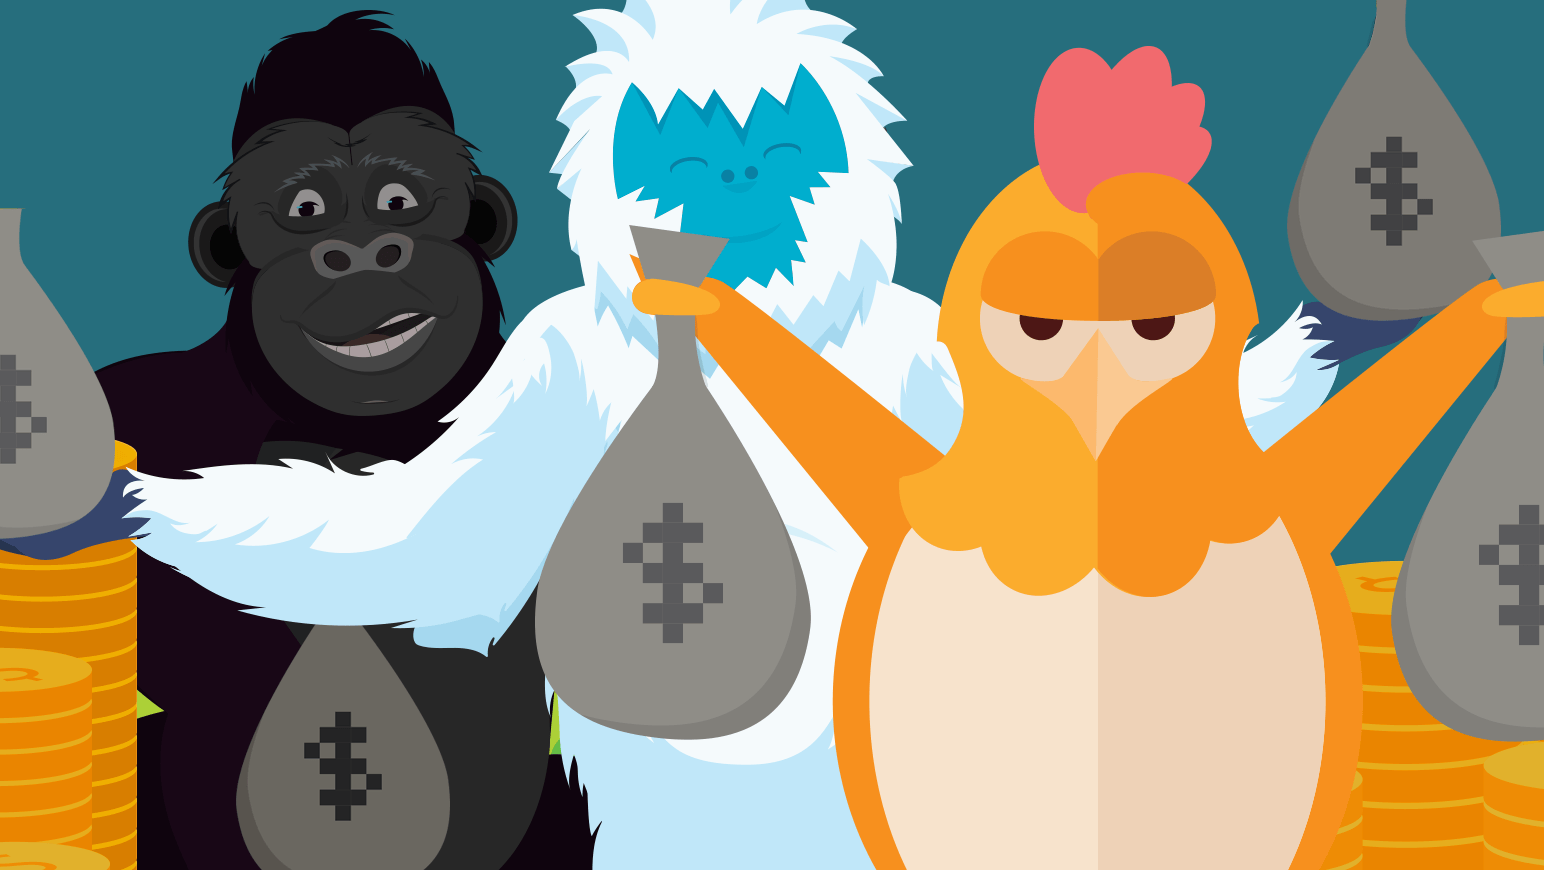 Several of Namecheaps brand mascot characters hold up bags of money, to symbolize the flourishing business of WordPress.